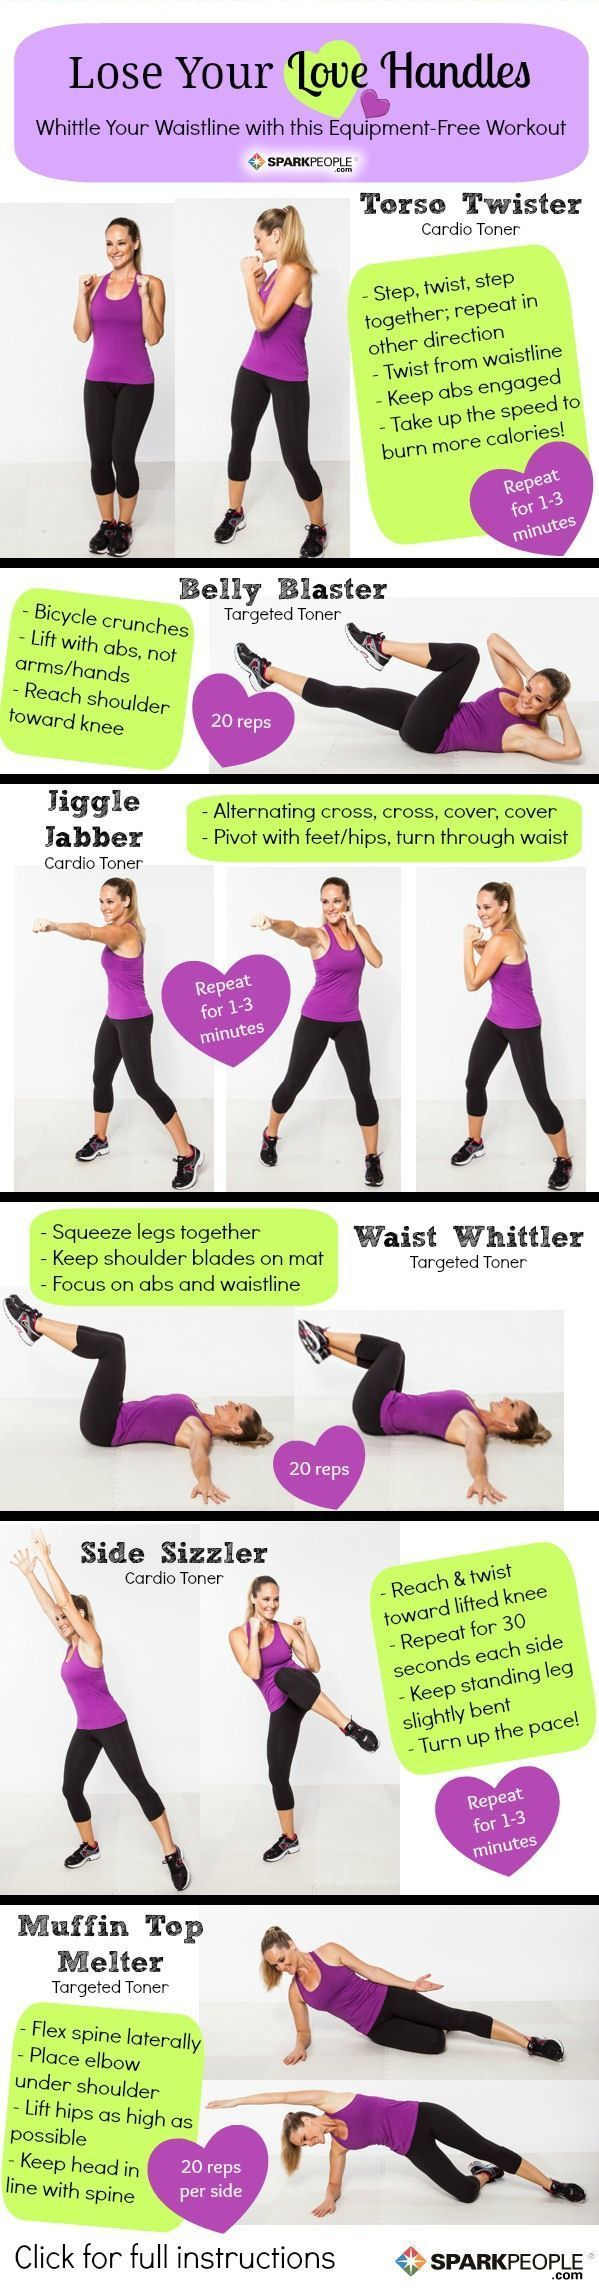 Lose Your Love Handles Workout Wish I could just pin these and have them take effect. Who wants to actually do these workouts?